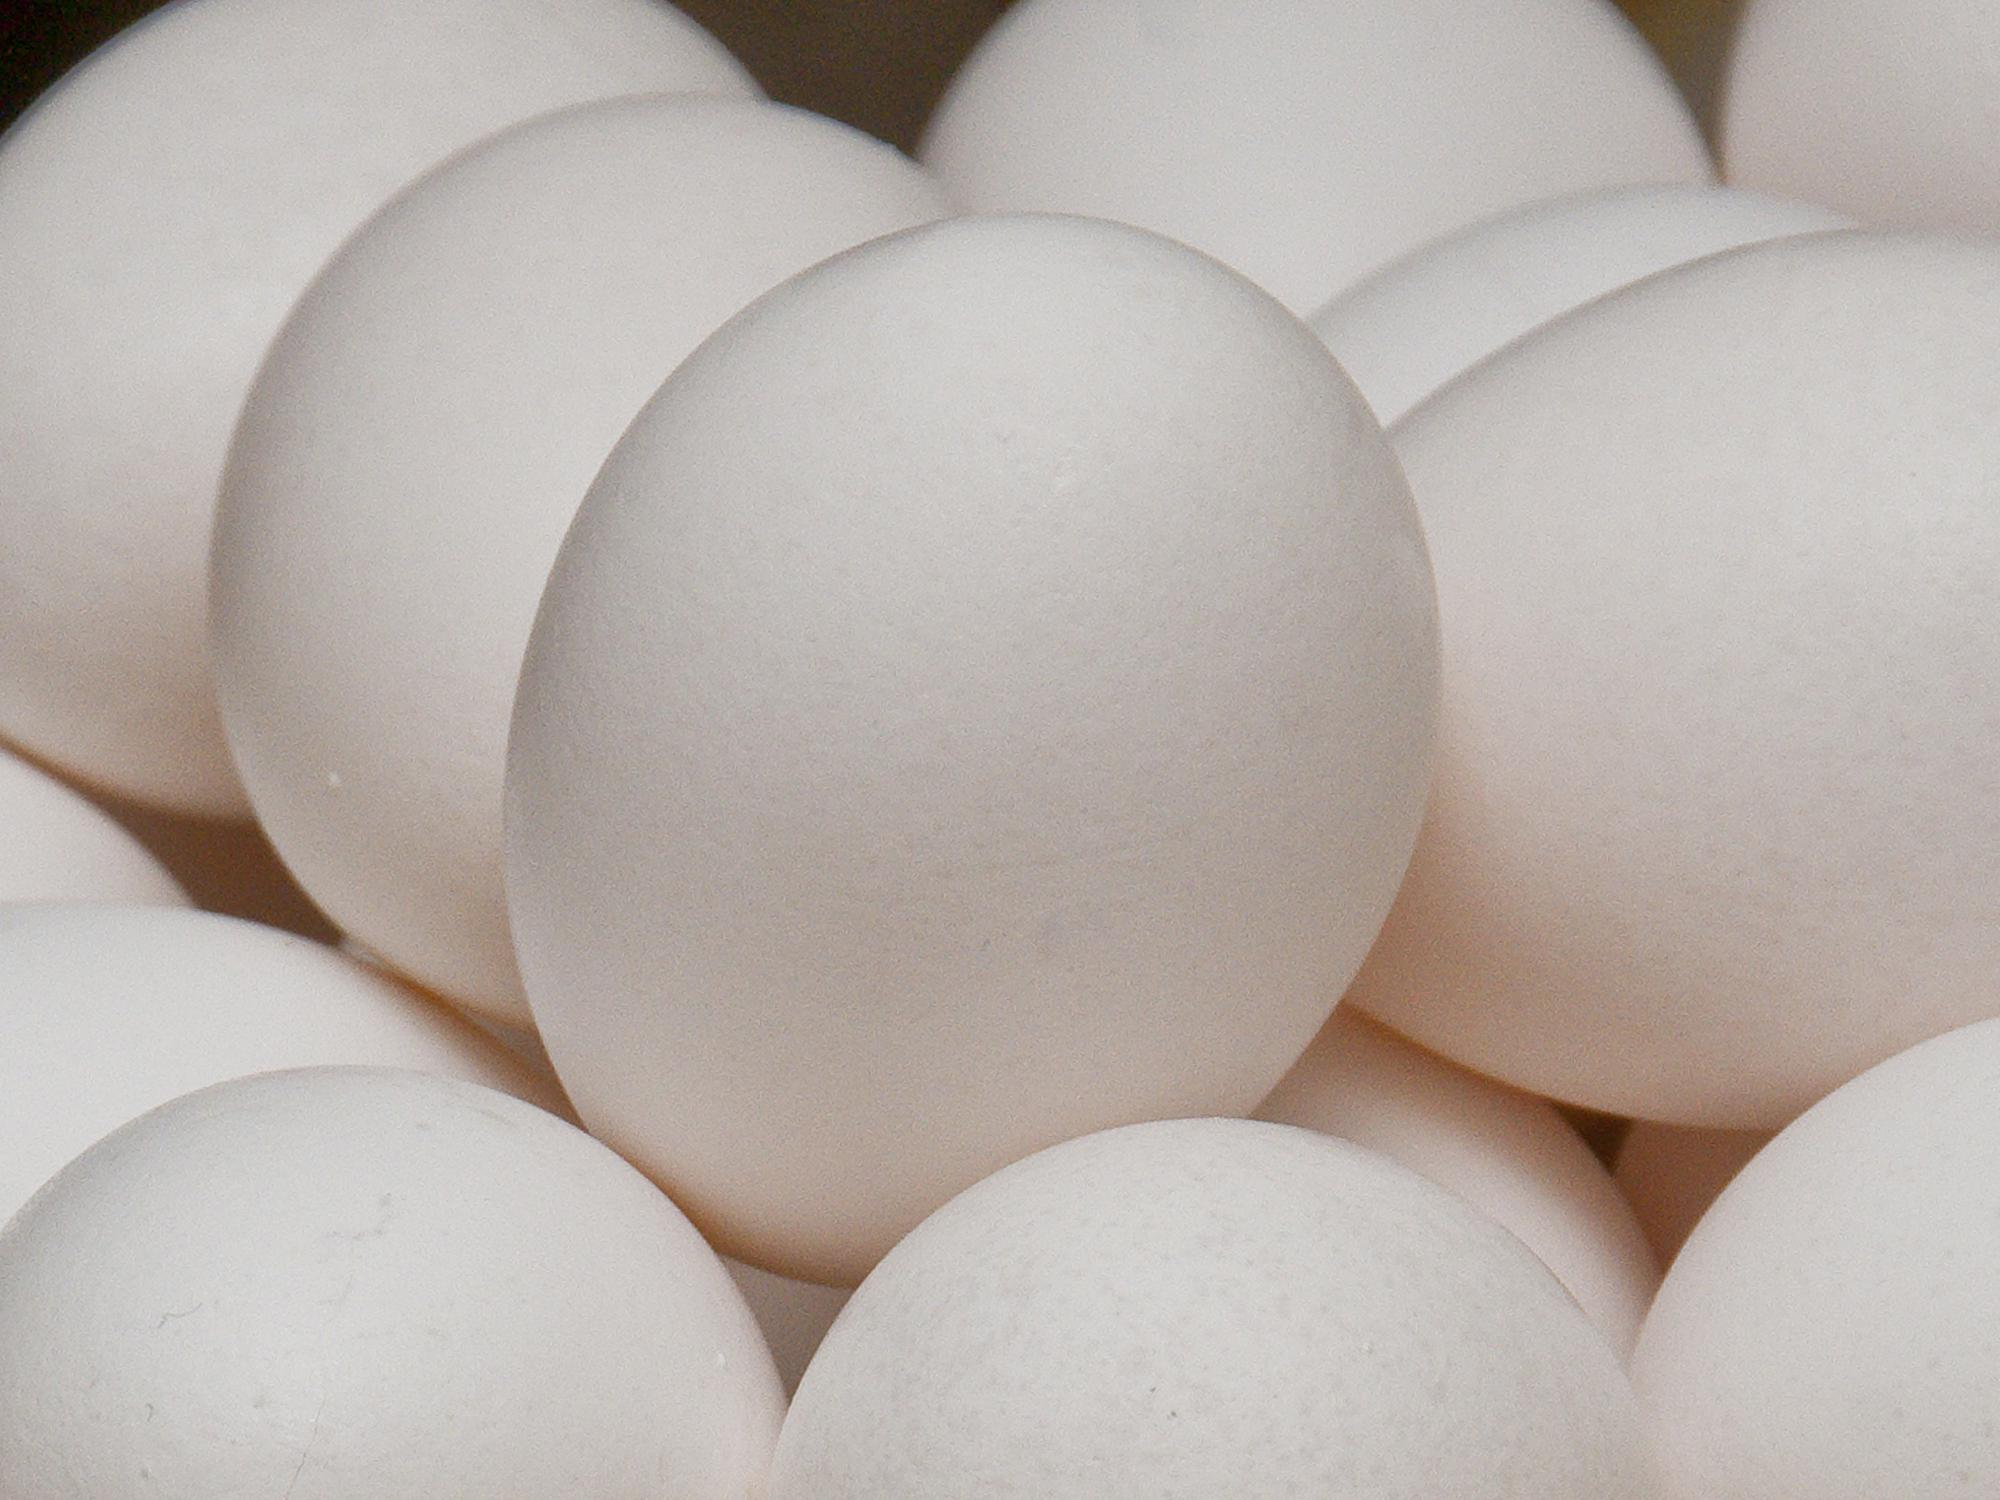 A close up of white eggs stacked in a bowl with other white eggs.